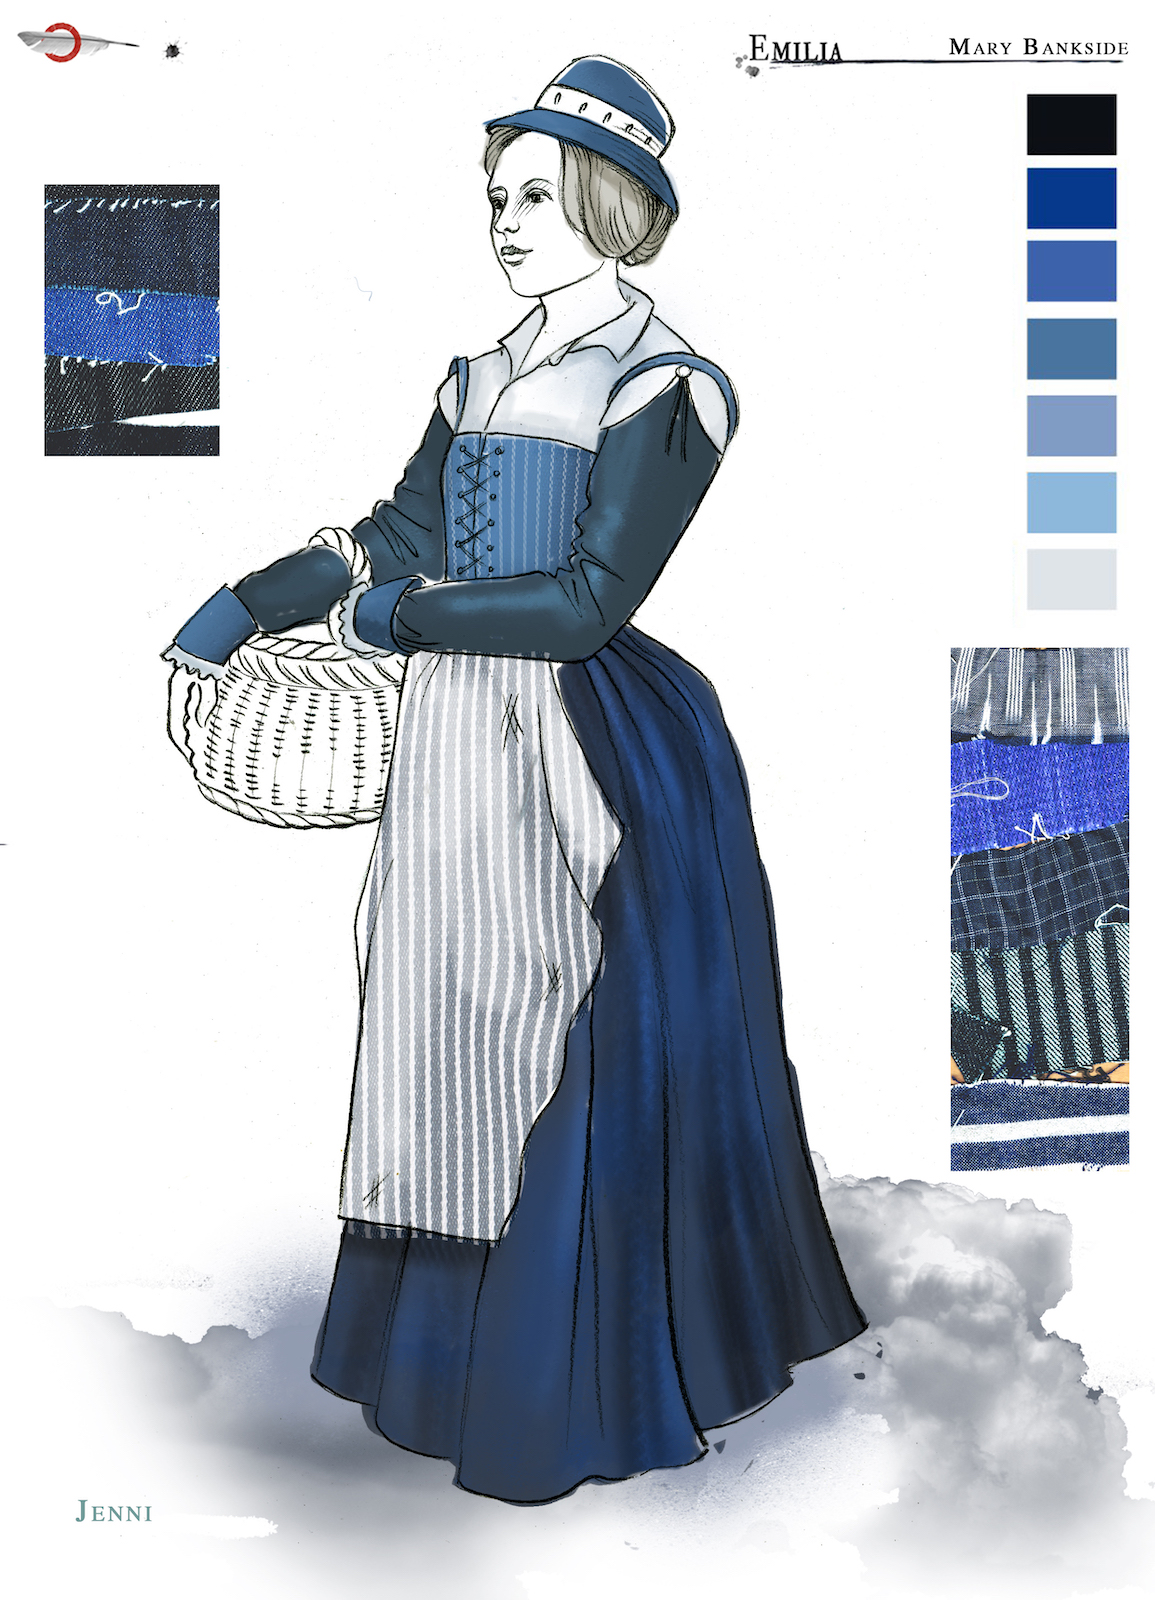 A costume sketch of a blue Elizabethan dress and the figure holds a basket